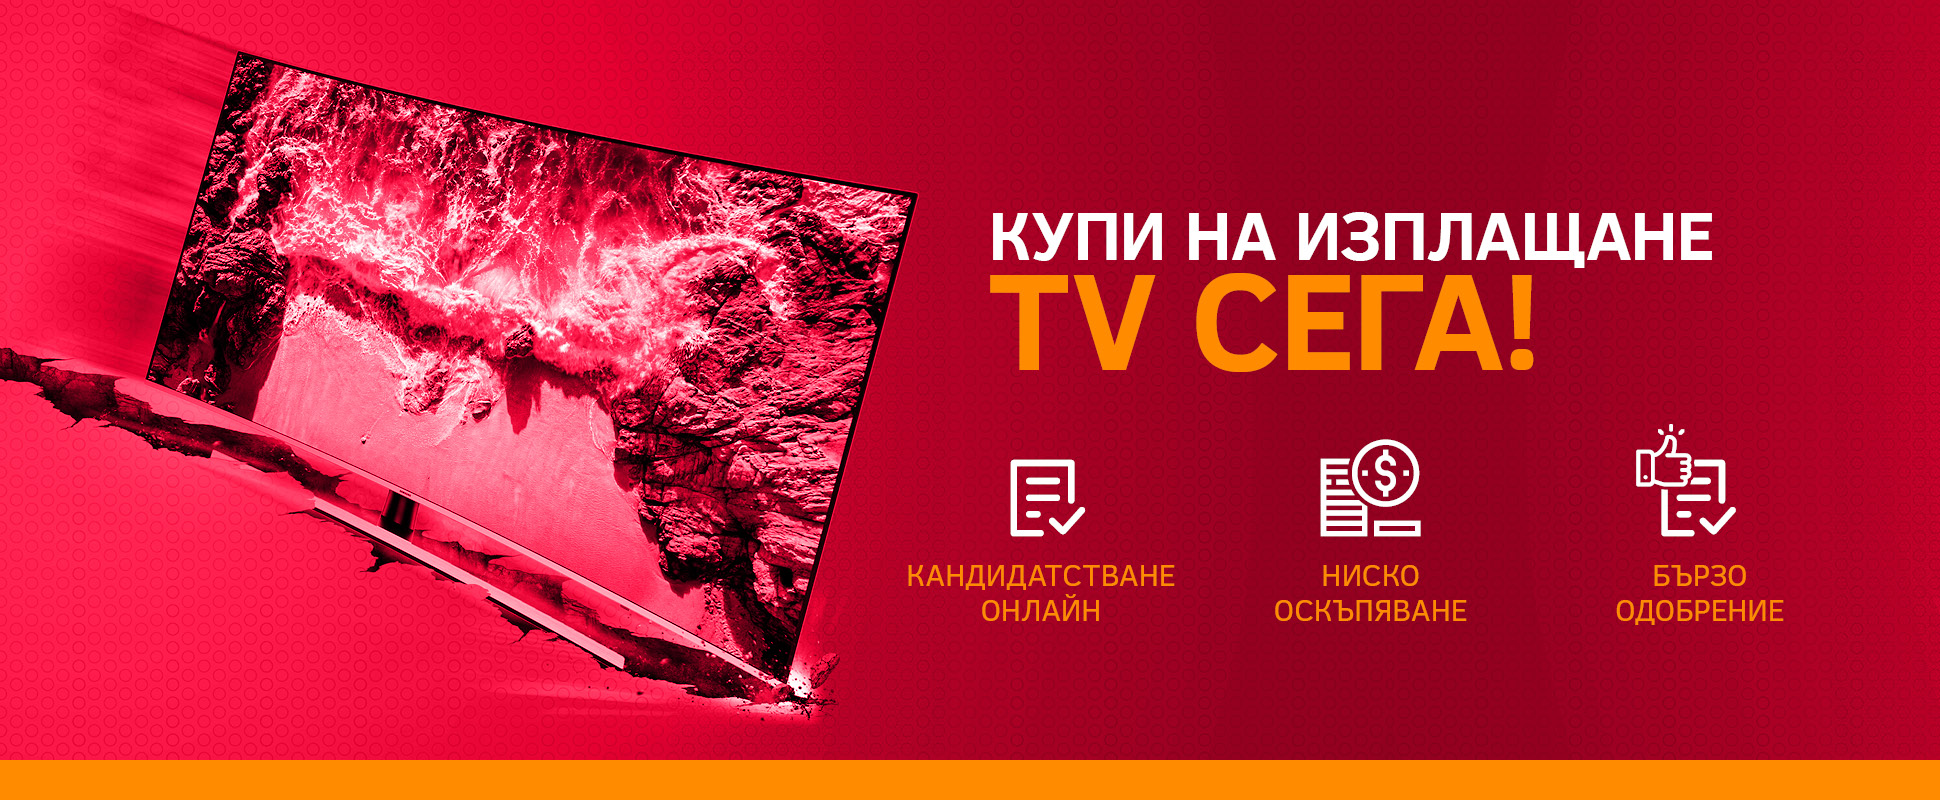 1940x800 pcshop izpl tv 01.2019.jpg